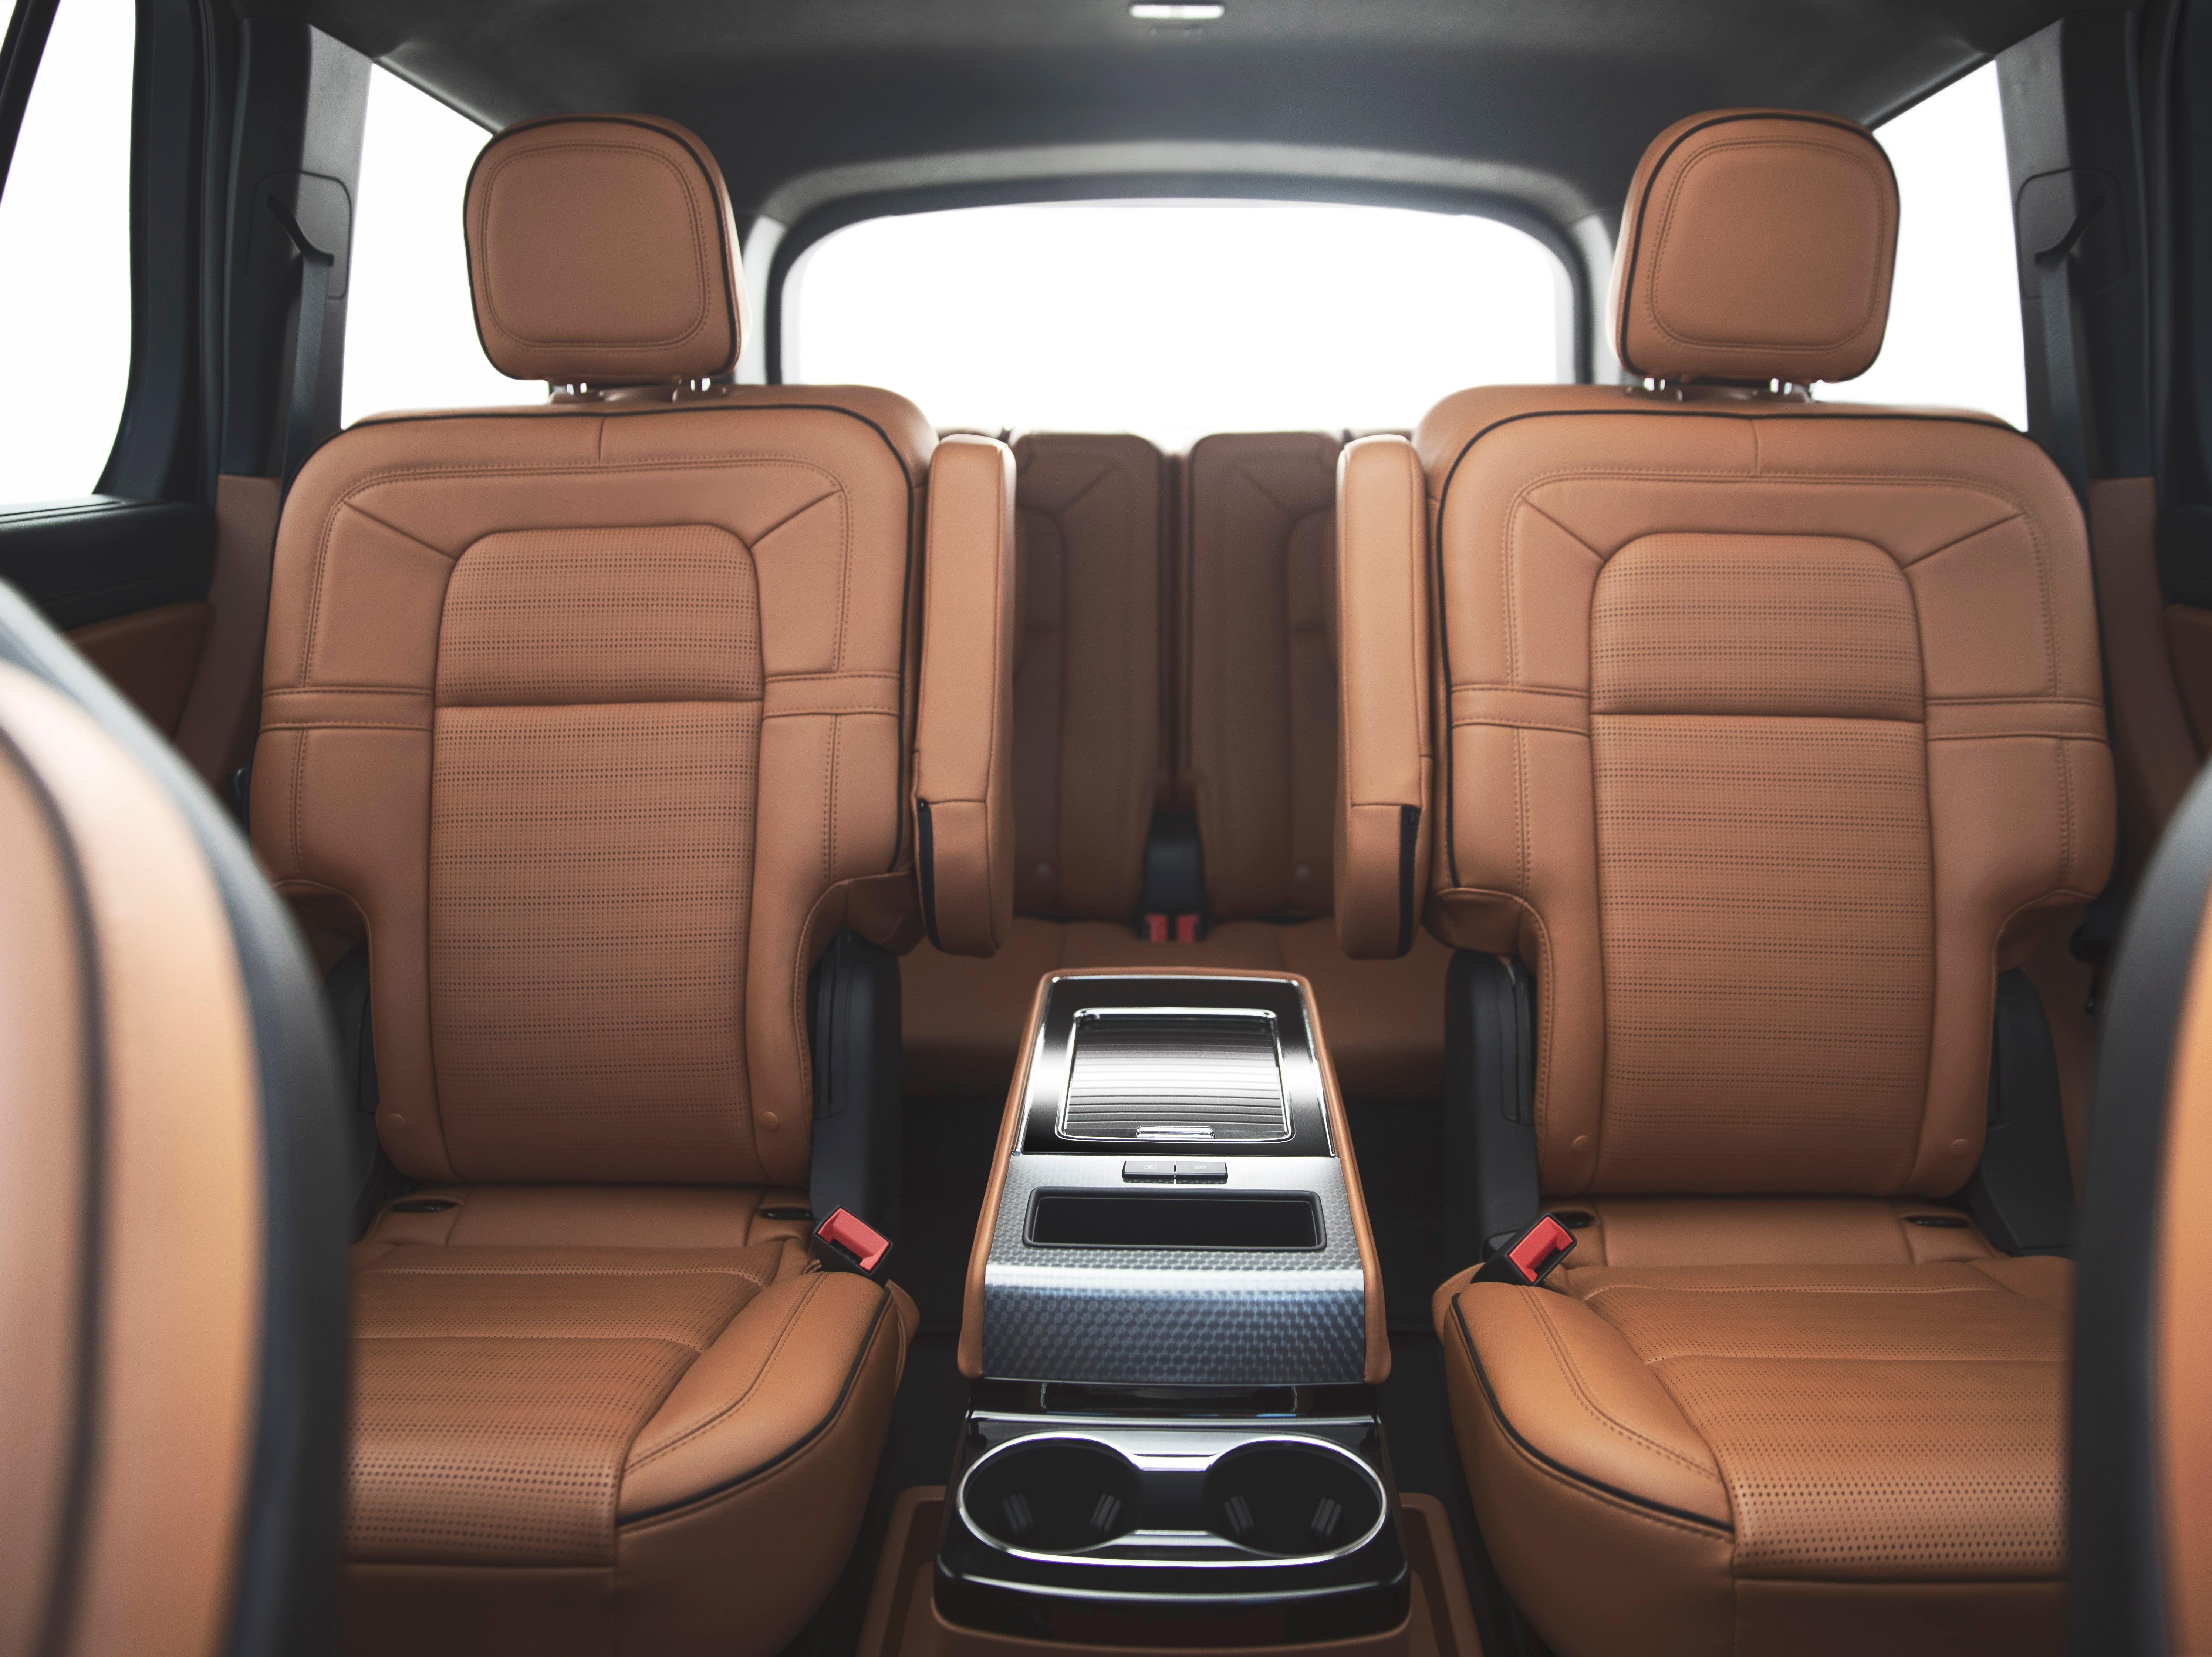 Backseat passengers get their own, five-inch control touchscreen and the roomy third-row is accessed with a simple push of a button atop the seat.